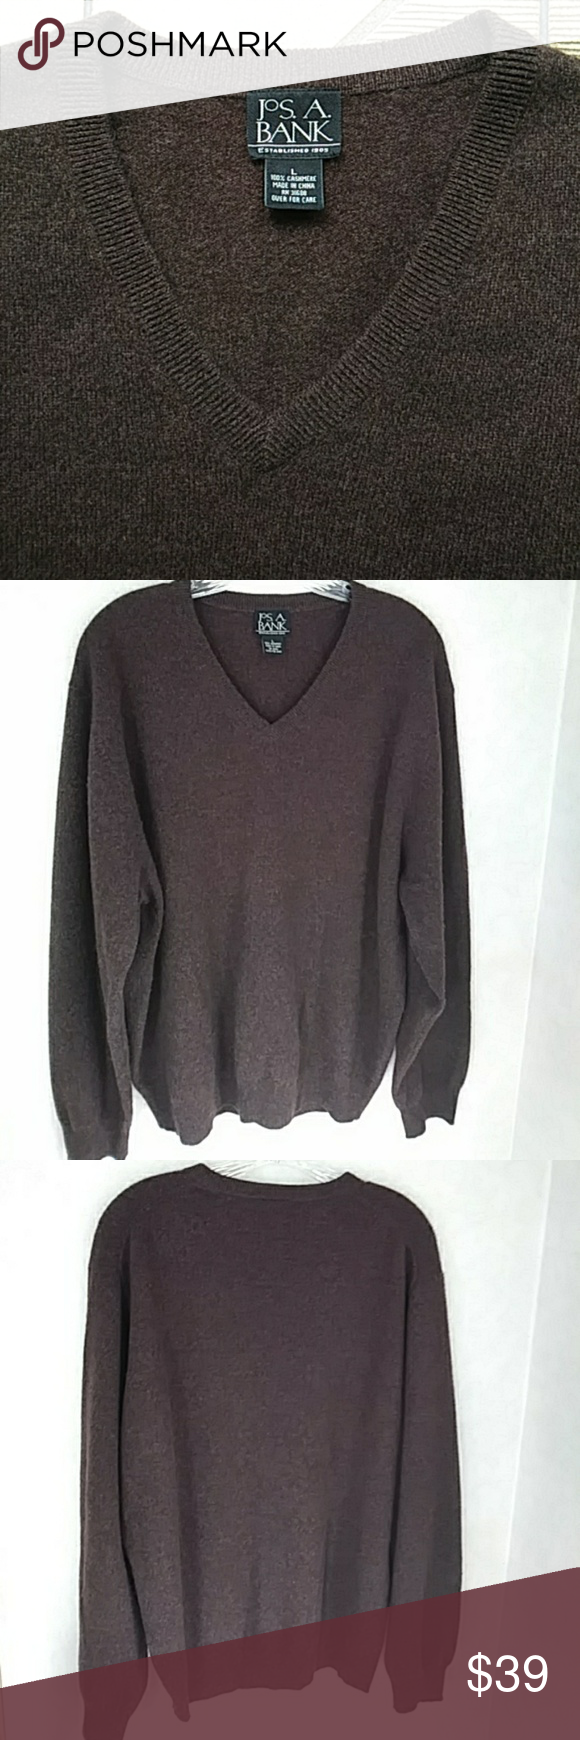 100% Cashmere Sweater - Brown - Size L | Cashmere sweaters ...